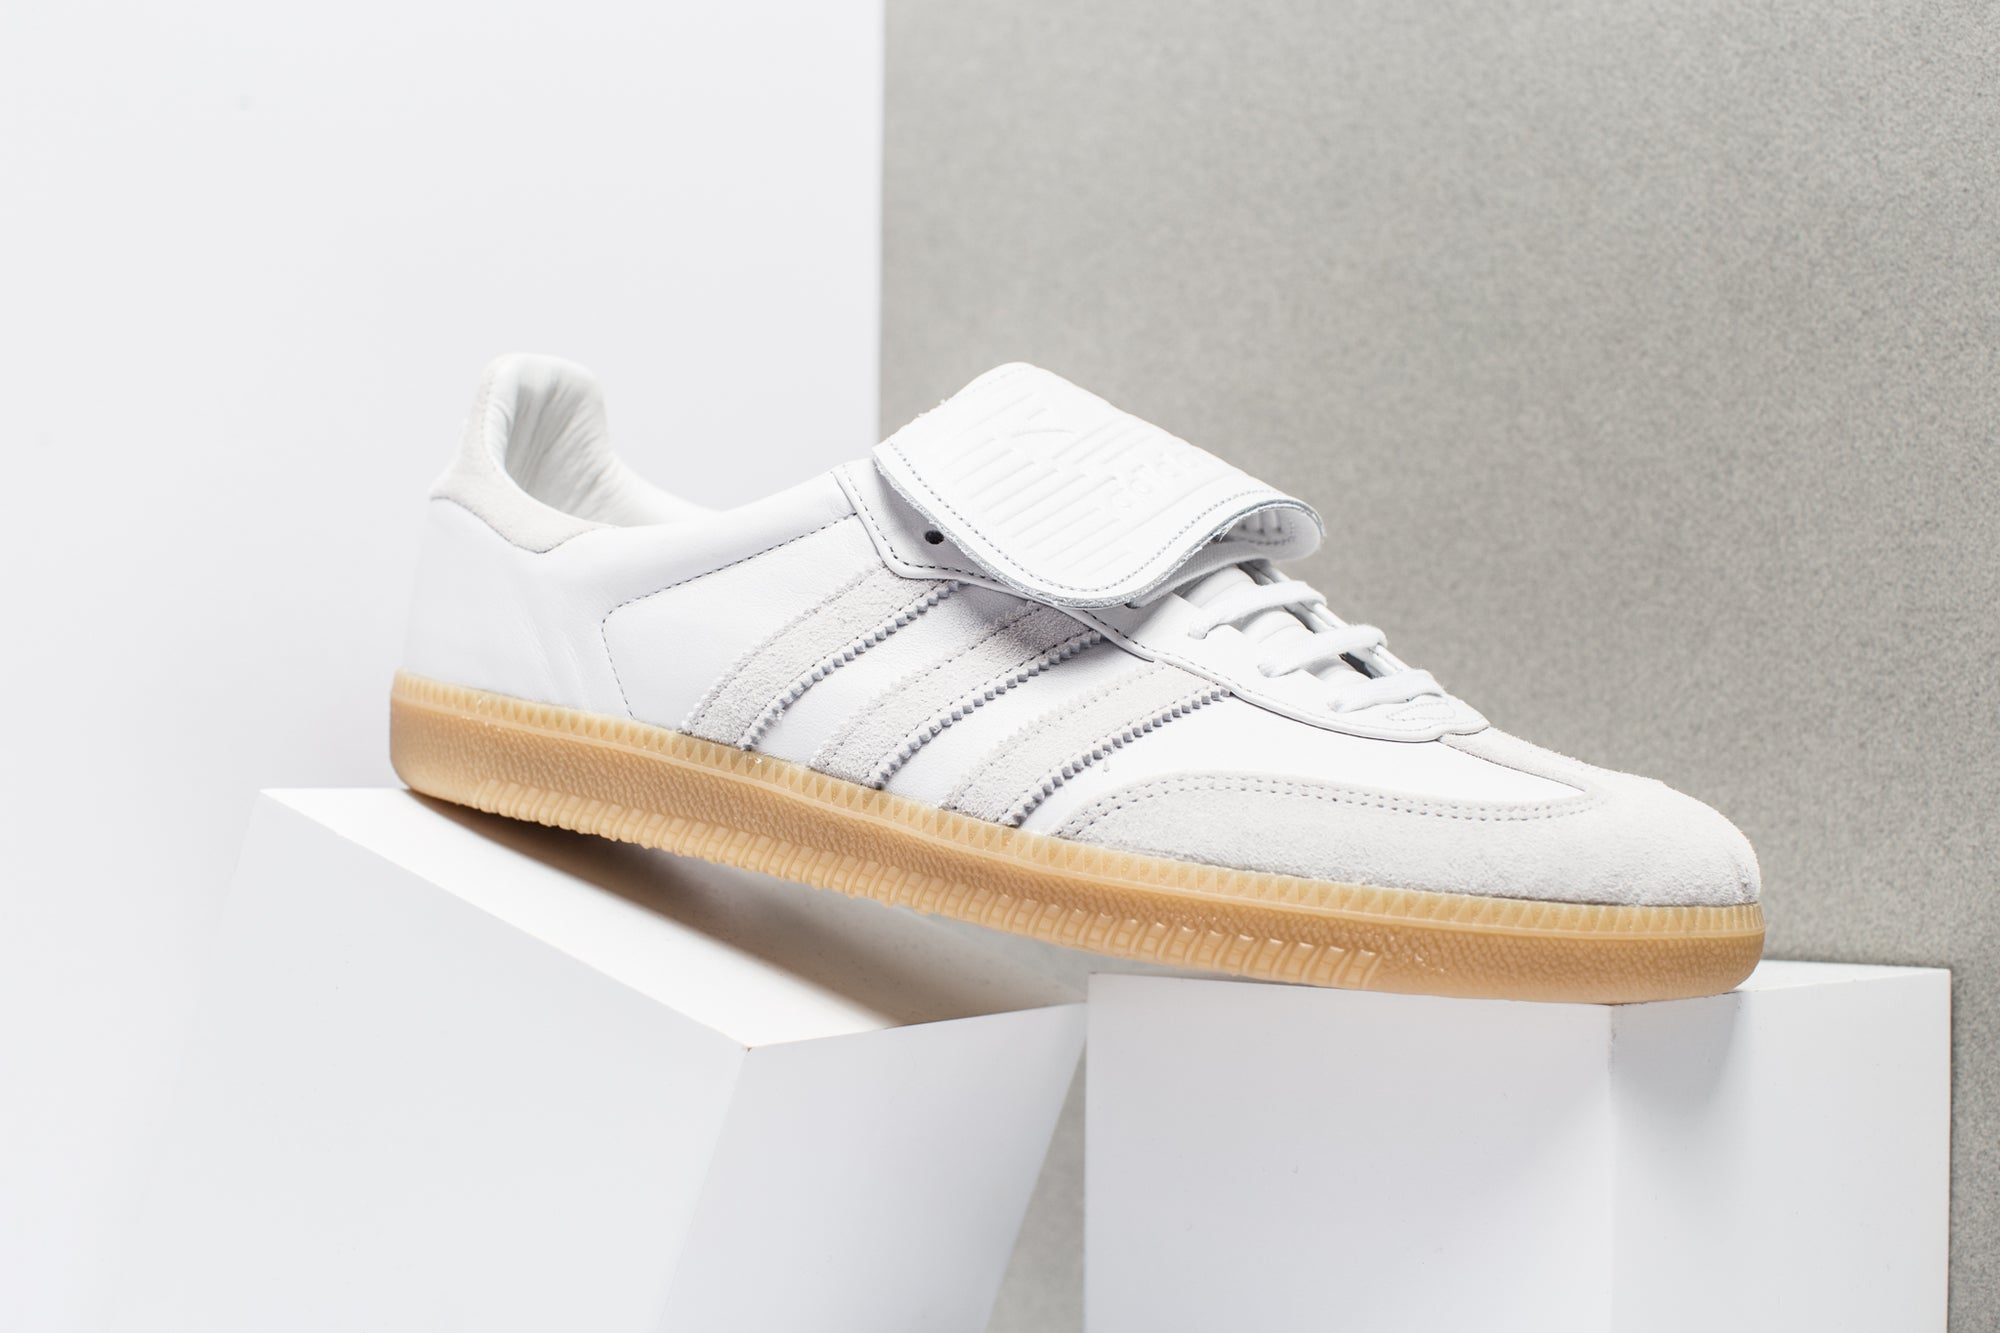 The adidas Samba Recon LT In Core Black And Crystal White